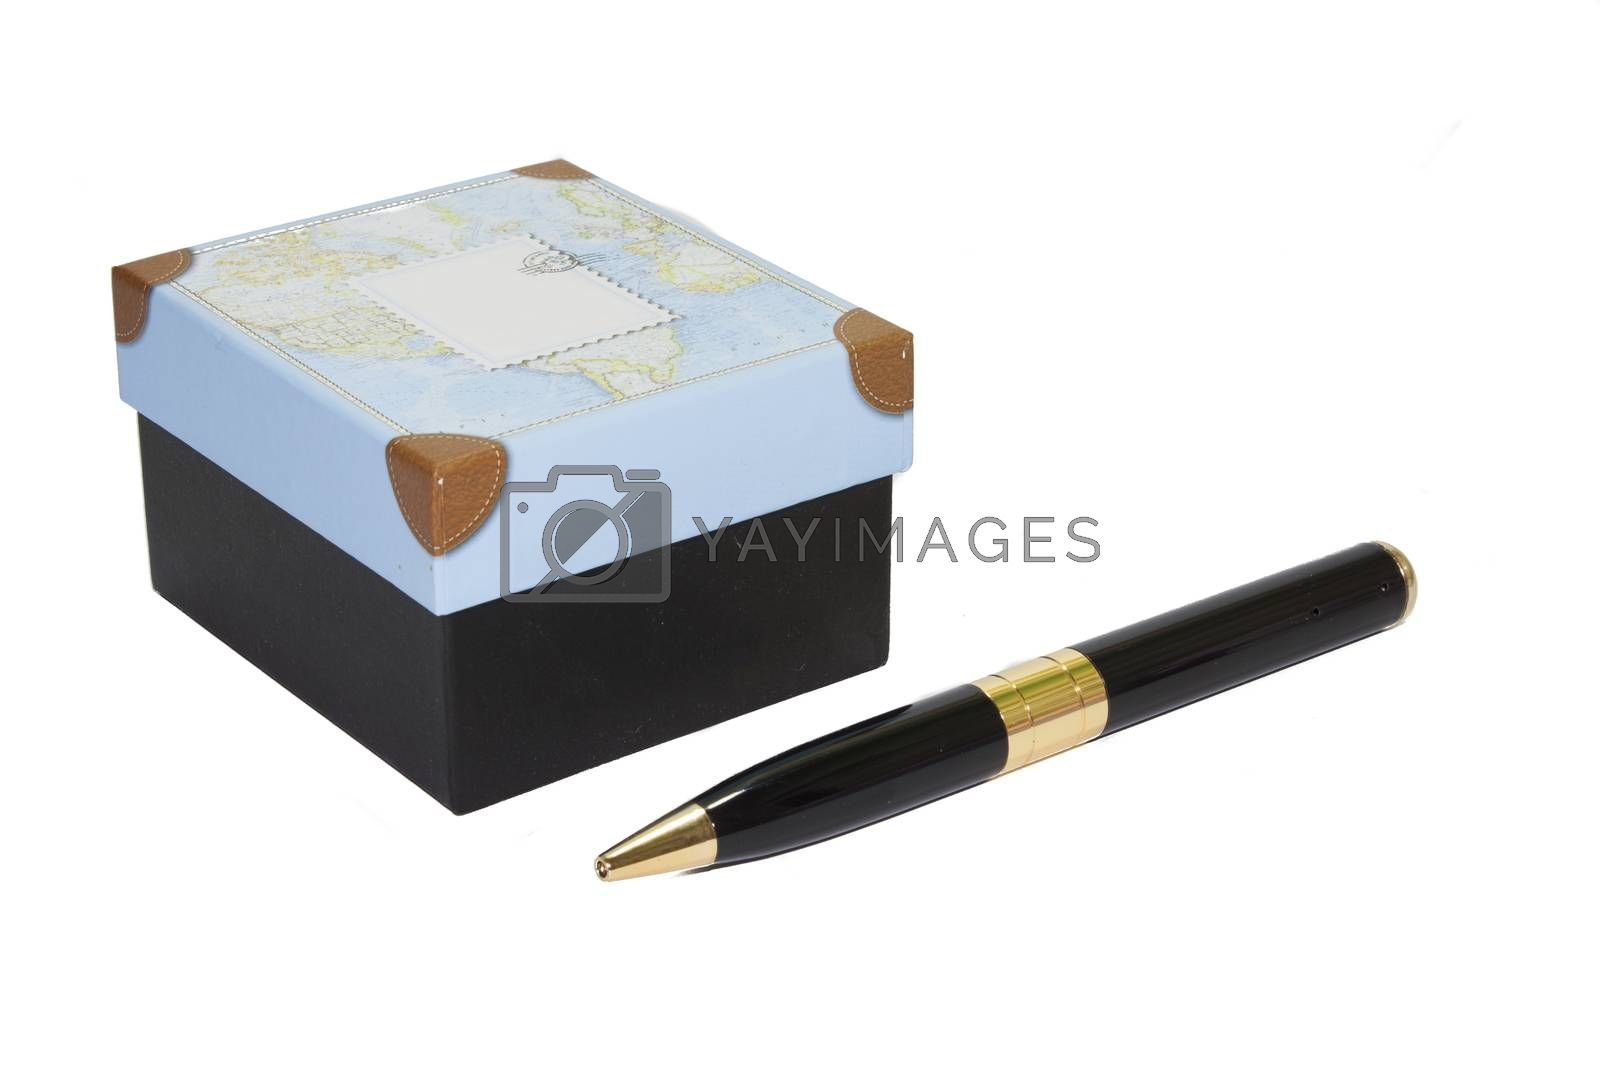 Gift box and pen on white background.